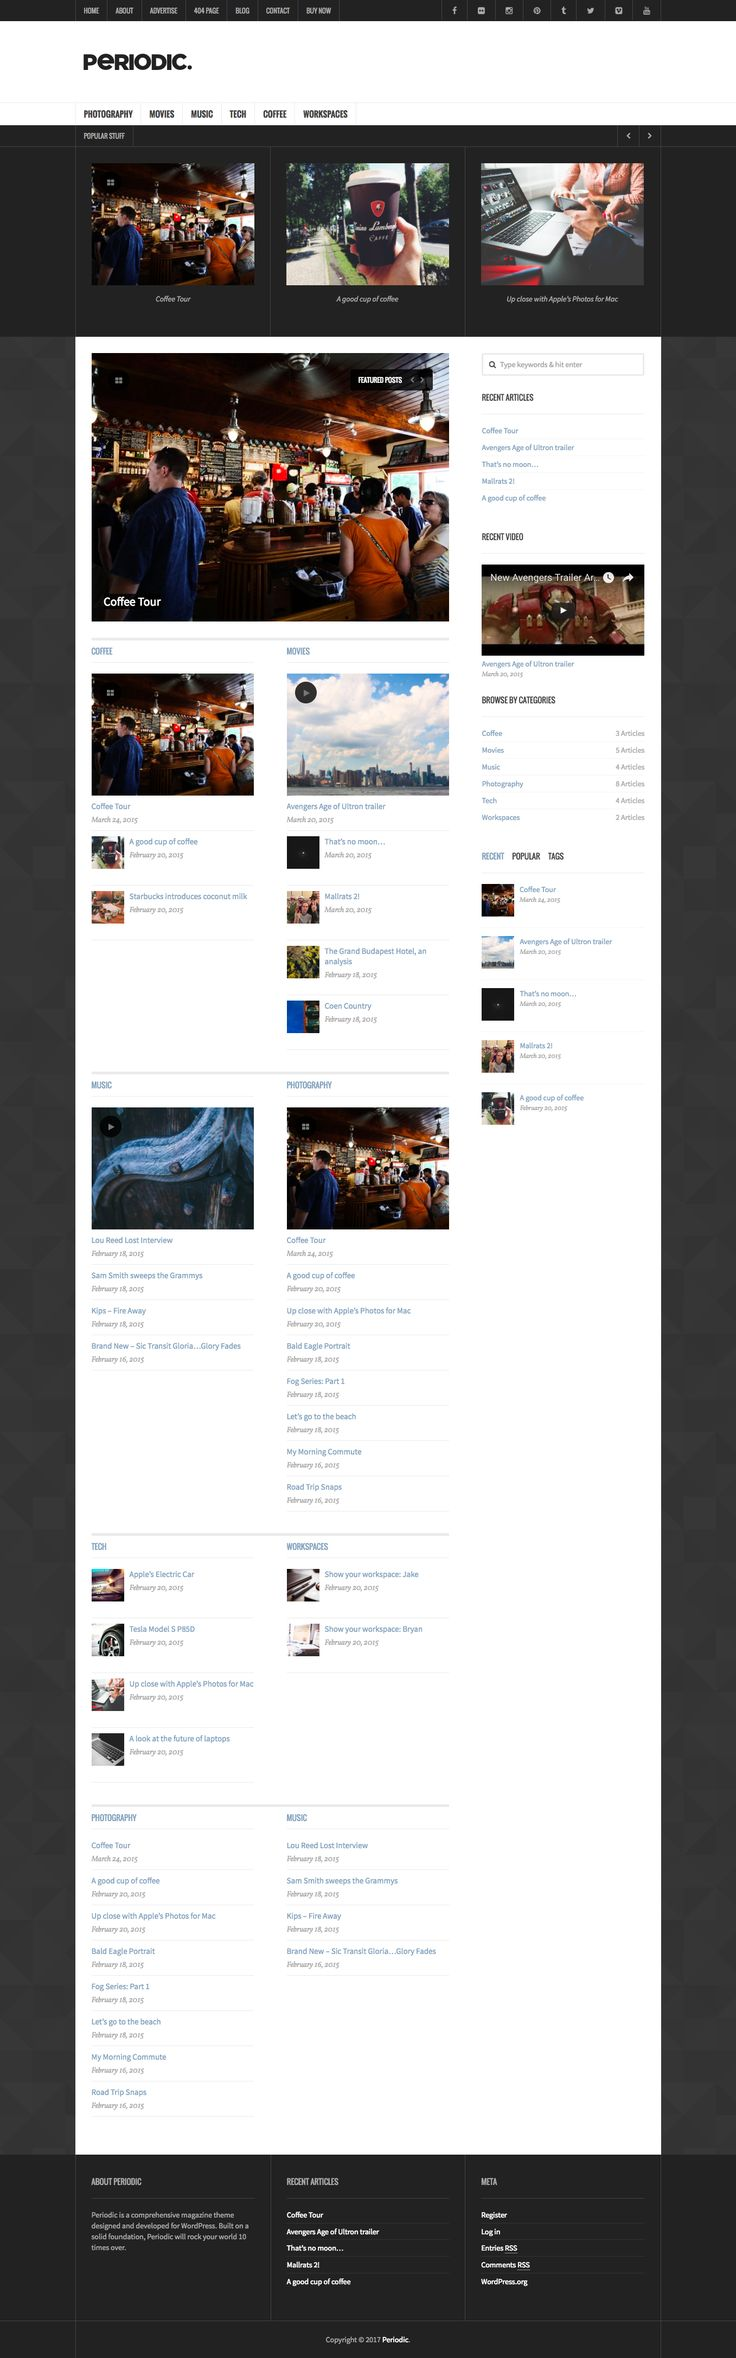 Periodic is a custom built, premium WordPress theme suited for online magazines, news portals and large blogs. And as of version 4.0, Periodic is fully responsive.